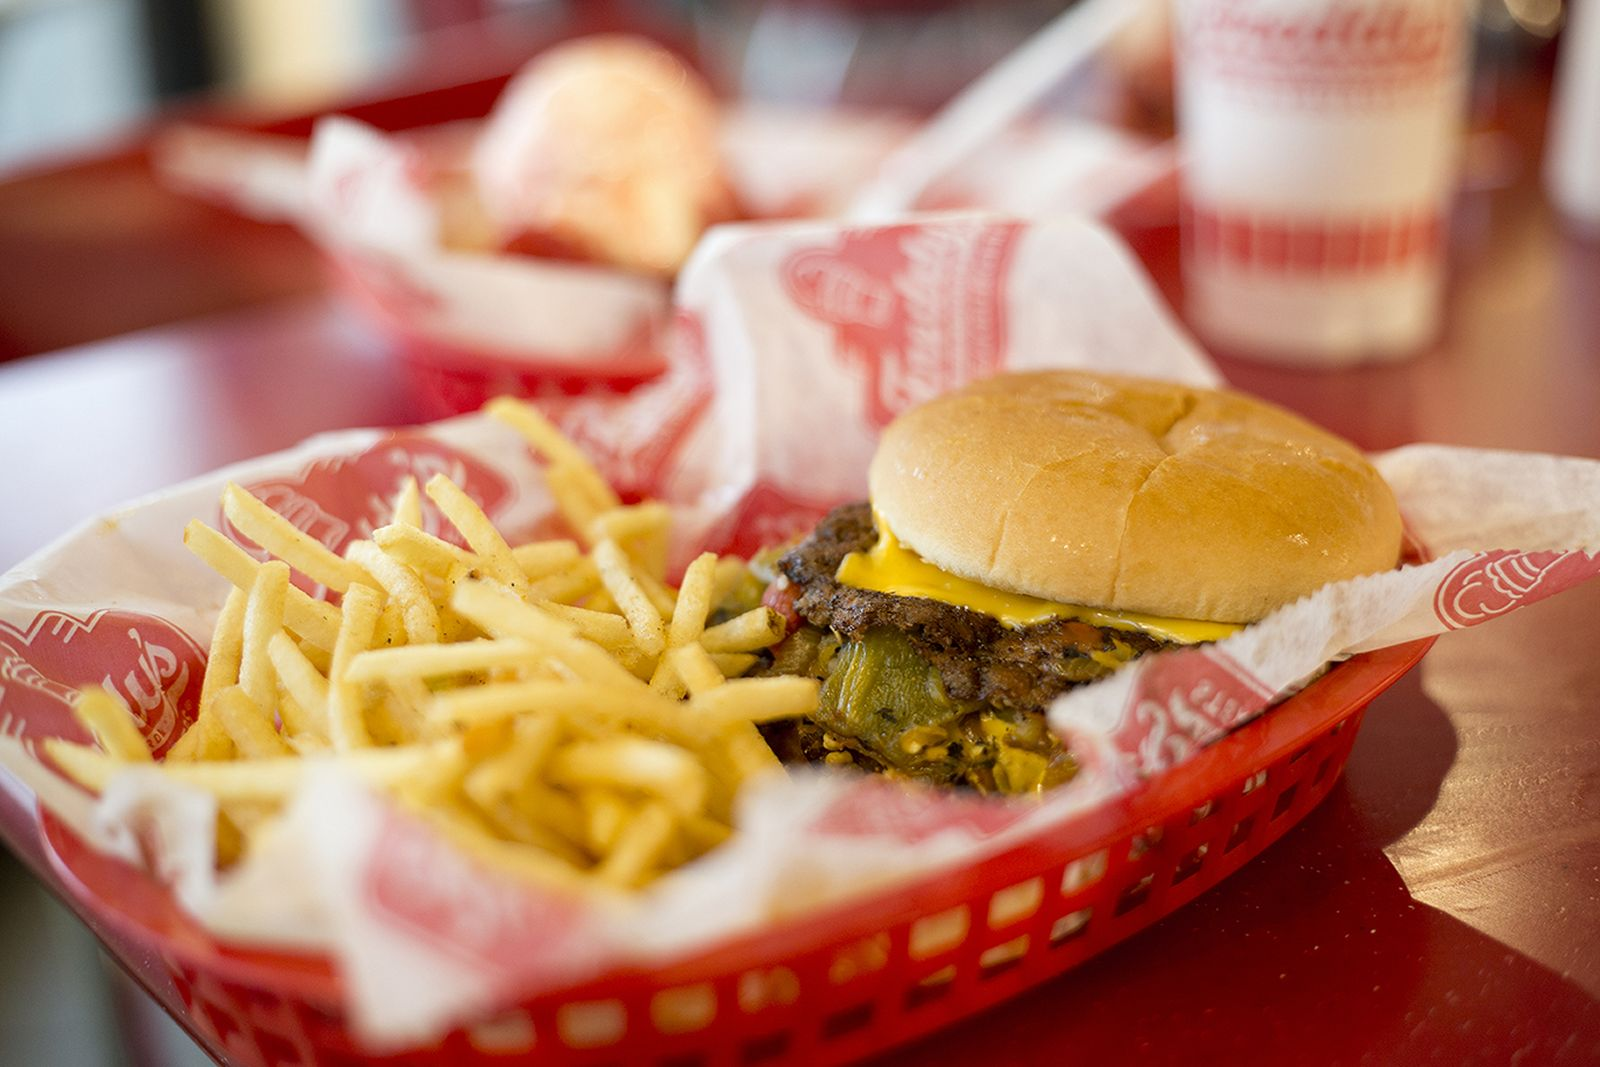 Freddy's Frozen Custard & Steakburgers Expands in the Southeast